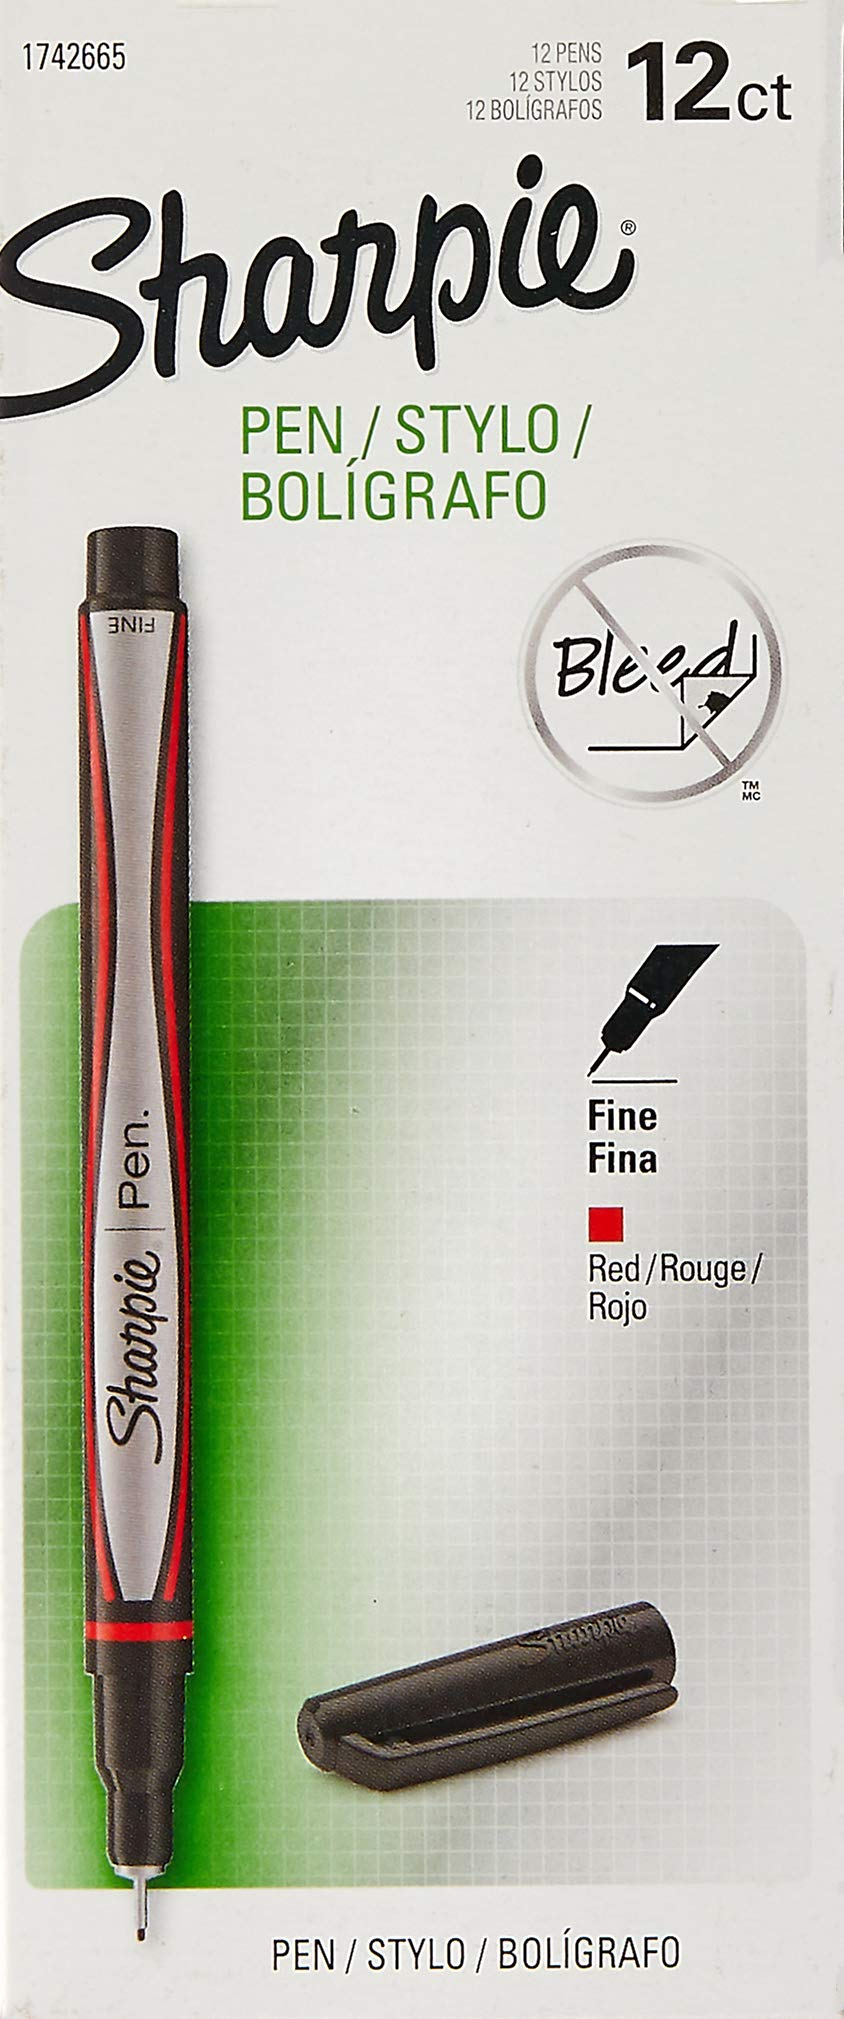 Sharpie 1742665 Pens, Fine Point, Red, Box of 12 by SHARPIE